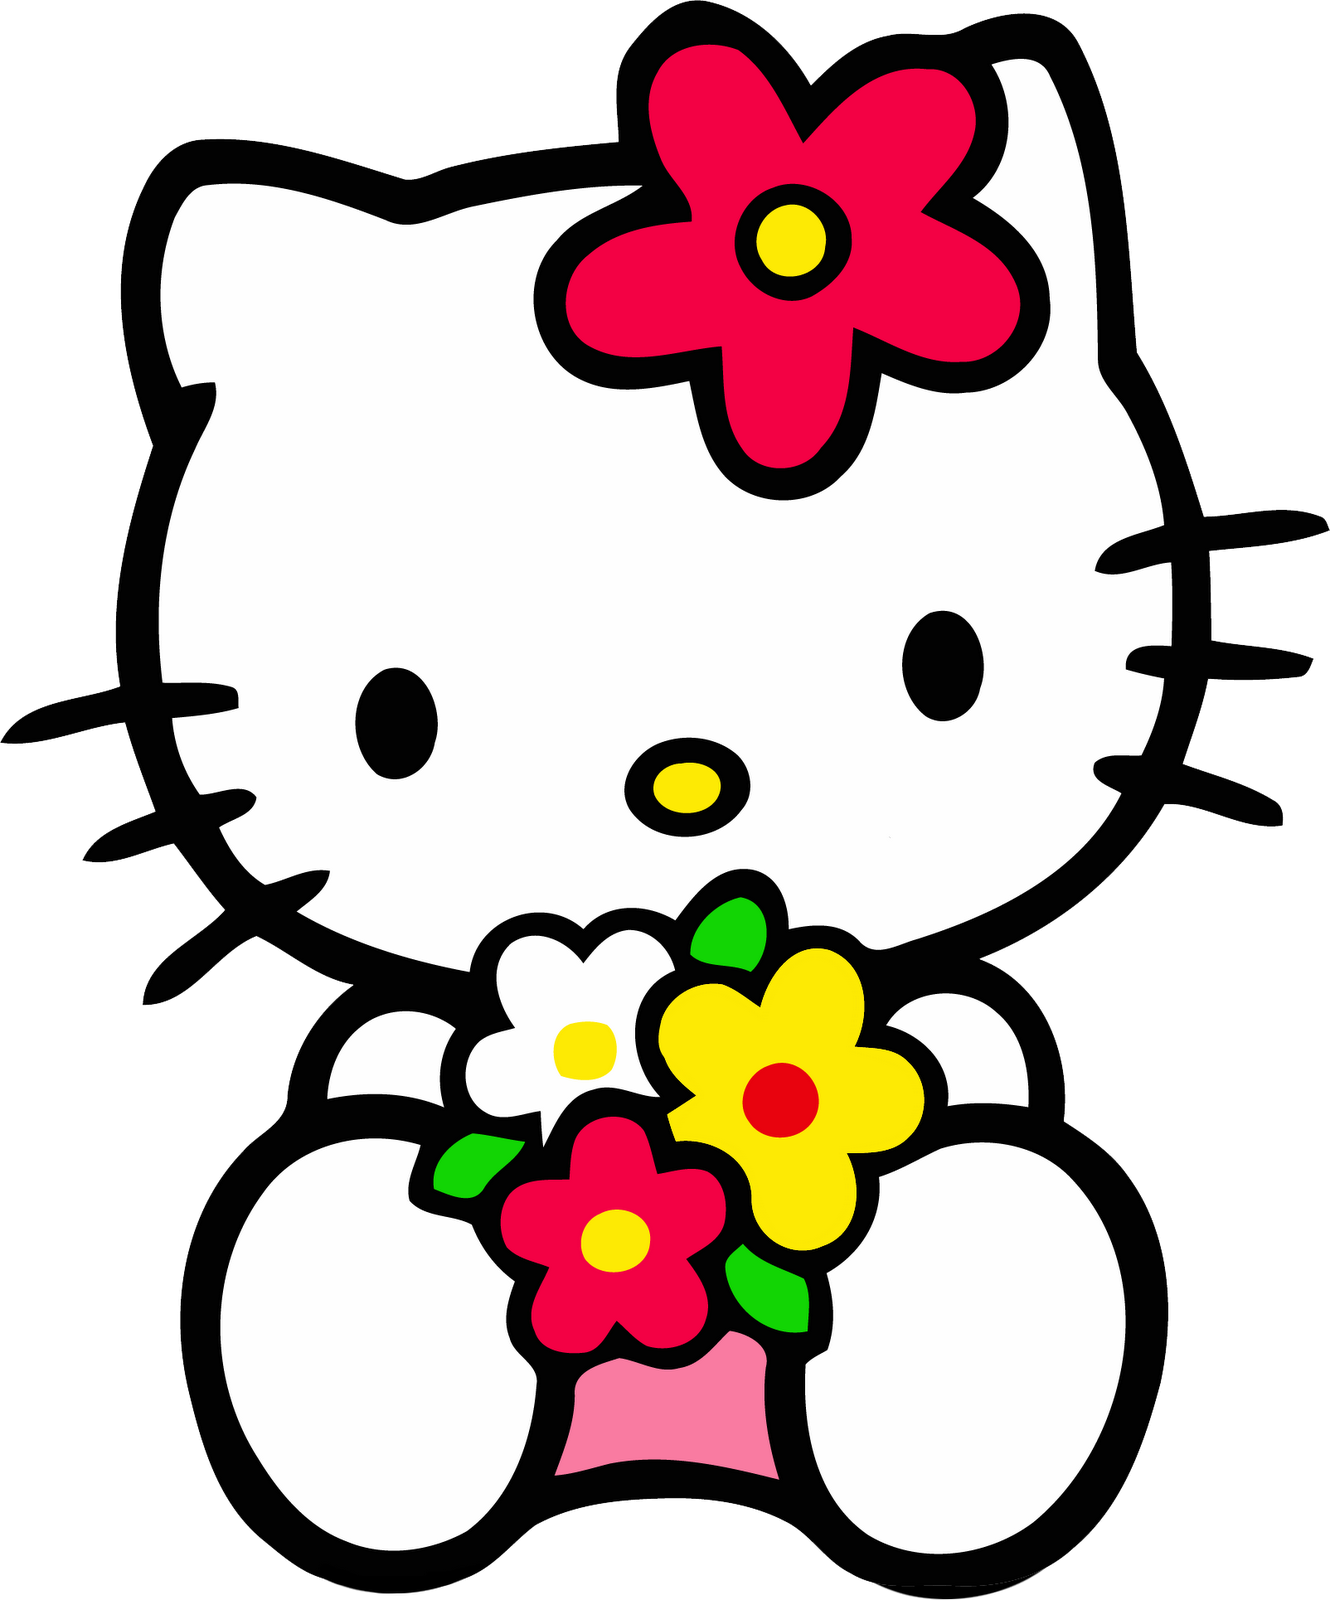 Happy birthday cat clipart clip freeuse download ImagesList.com: Hello Kitty Images, part 2 | Projects to Try ... clip freeuse download